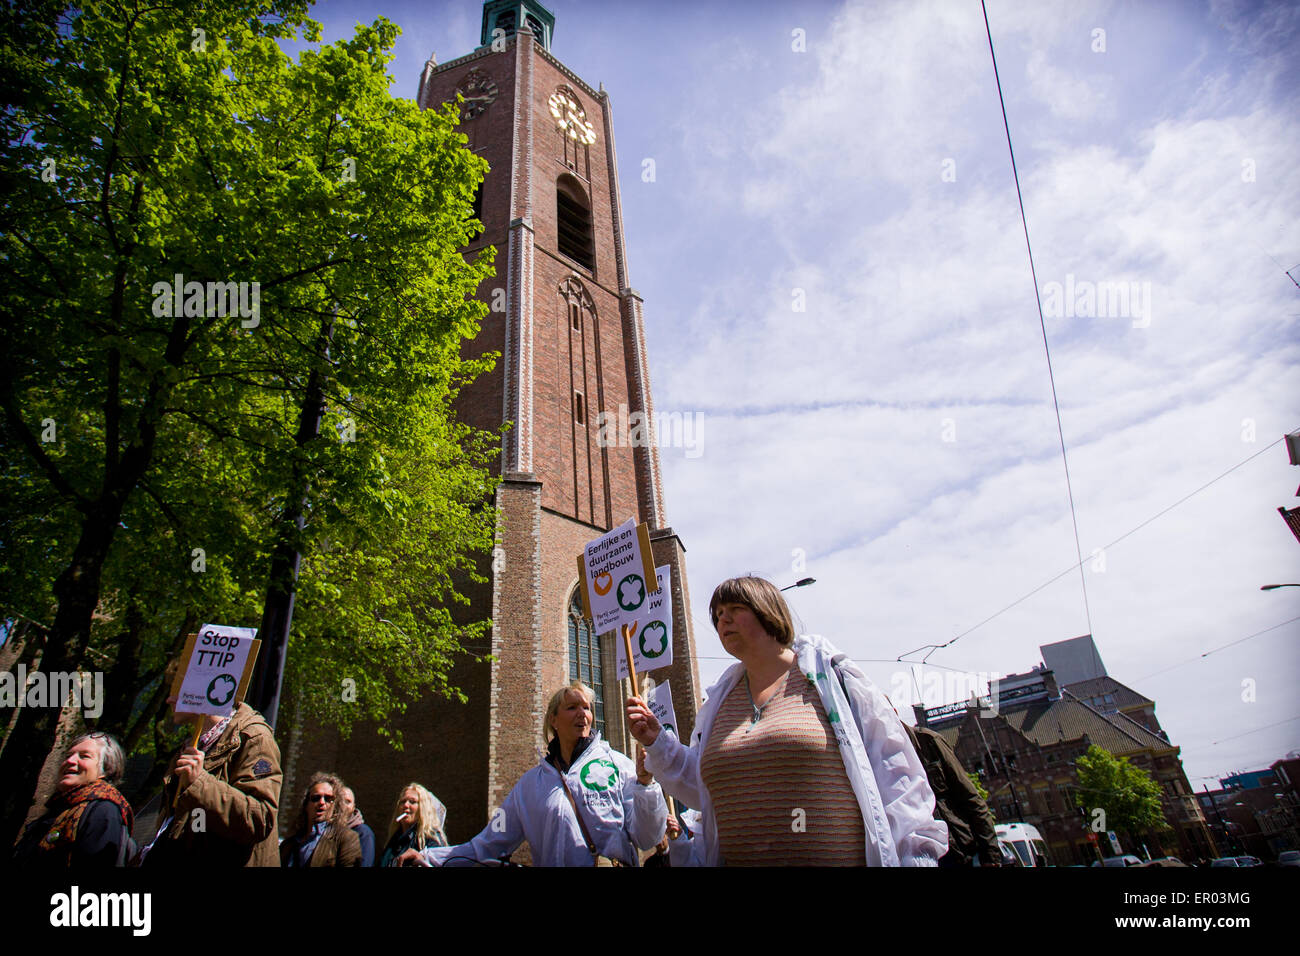 The Hauge, The Netherlands. 23rd May, 2015. On Saturday May 23rd 2015 around 100 people took part in the March Against Stock Photo